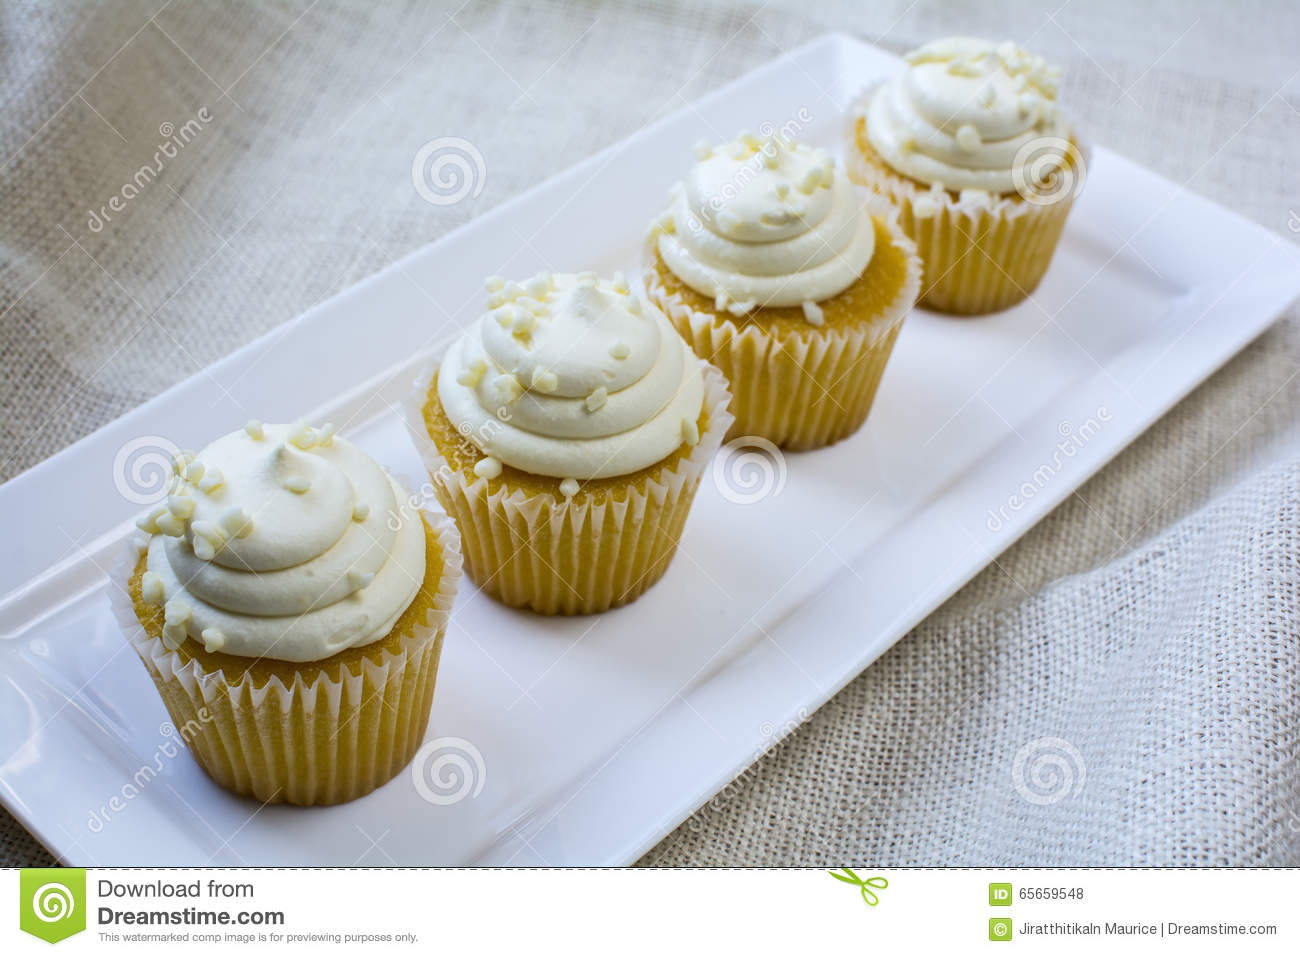 Four French Vanilla Cupcakes On White Square Plate Stock Photo